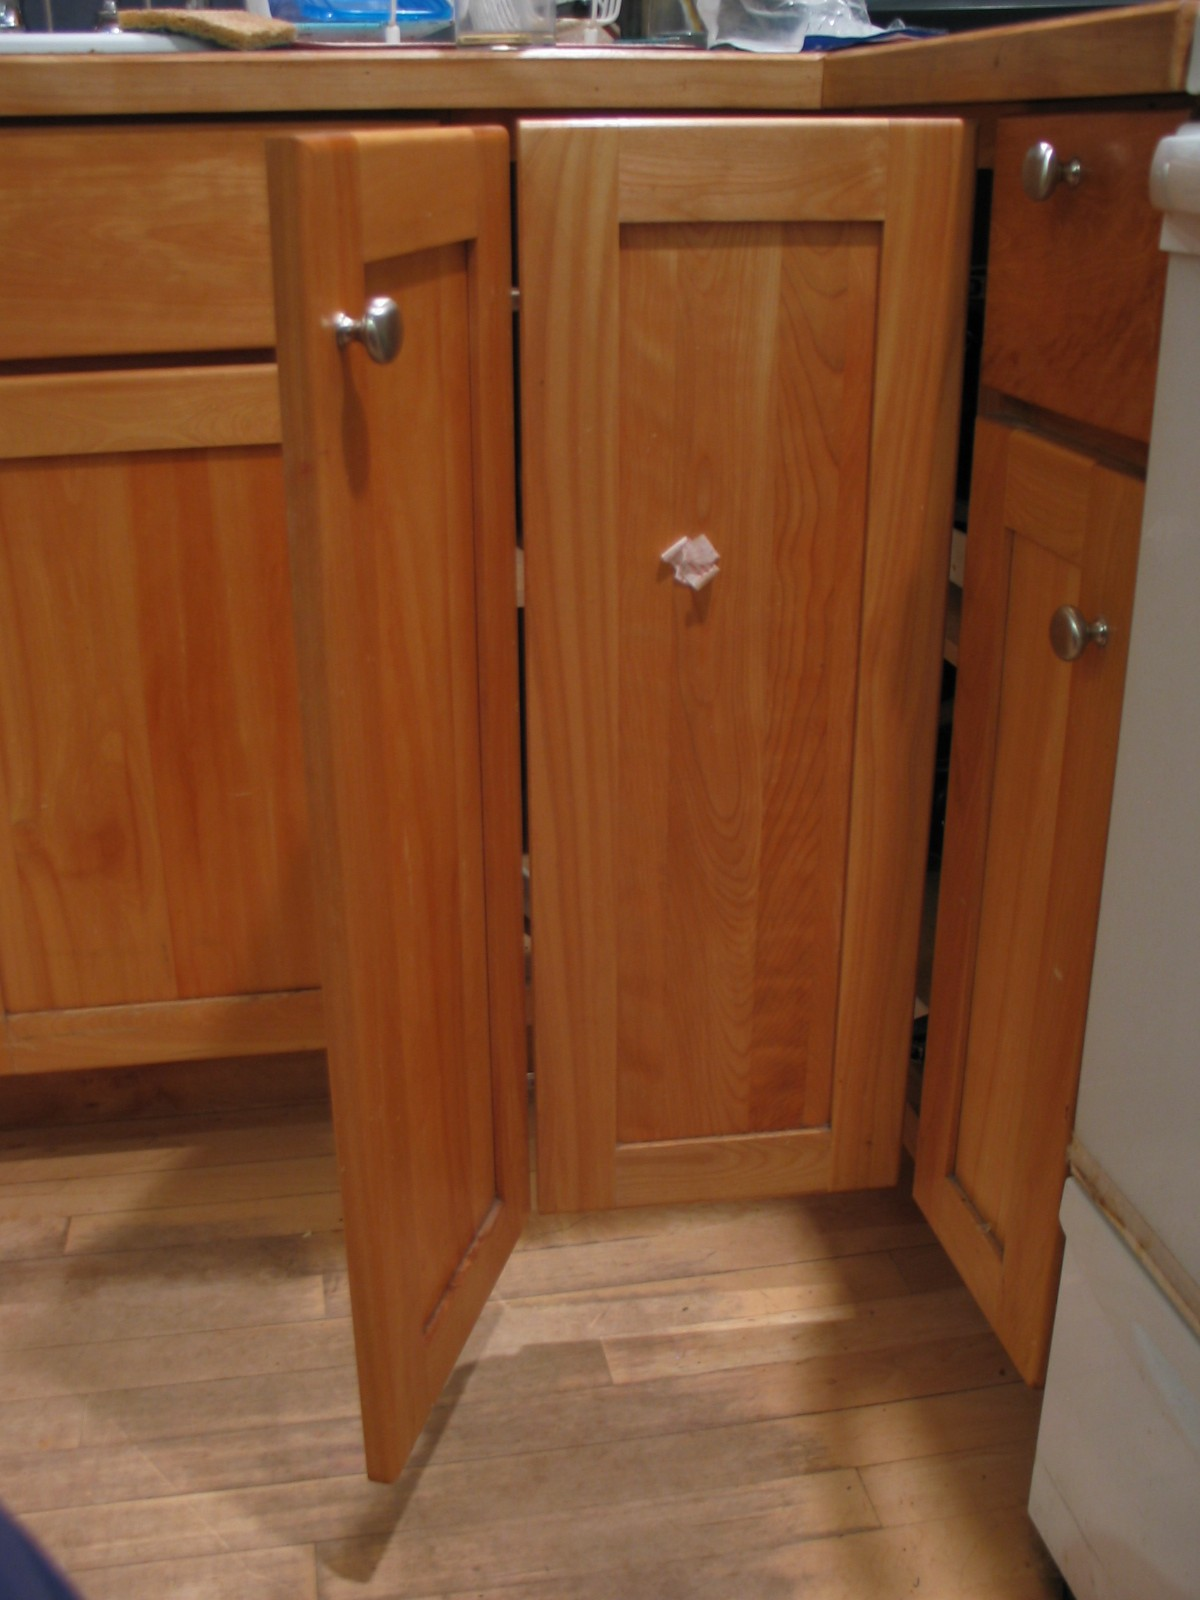 Kitchen cabinet hinges corner cabinets - An Open Wood Corner Cabinet Door There Are Two Panels With A Hinge